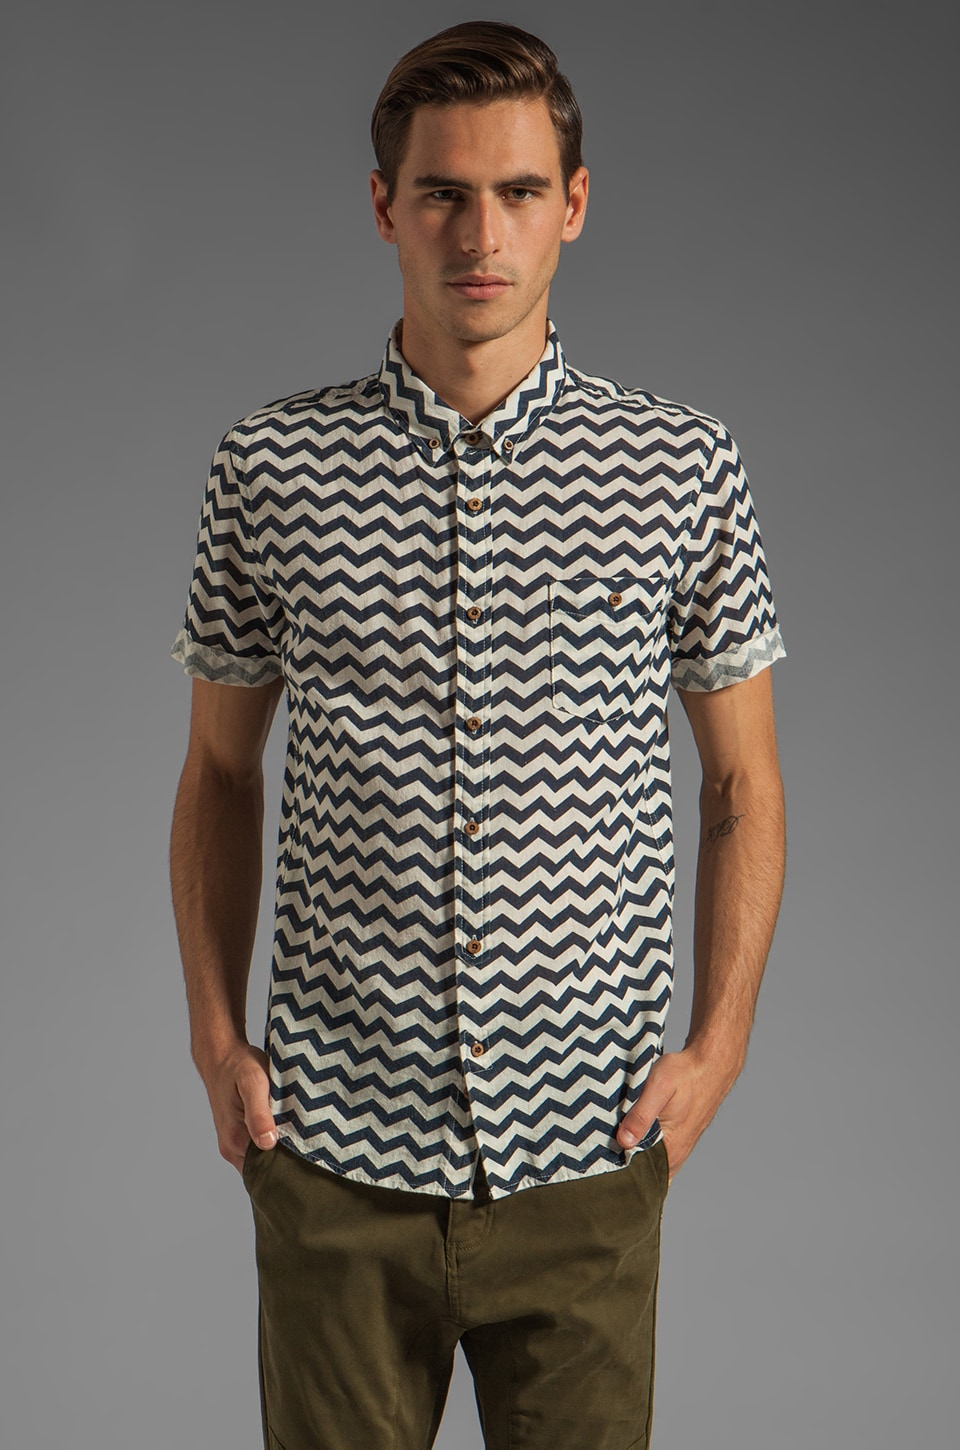 Zanerobe Bay Short Sleeve Shirt in Navy